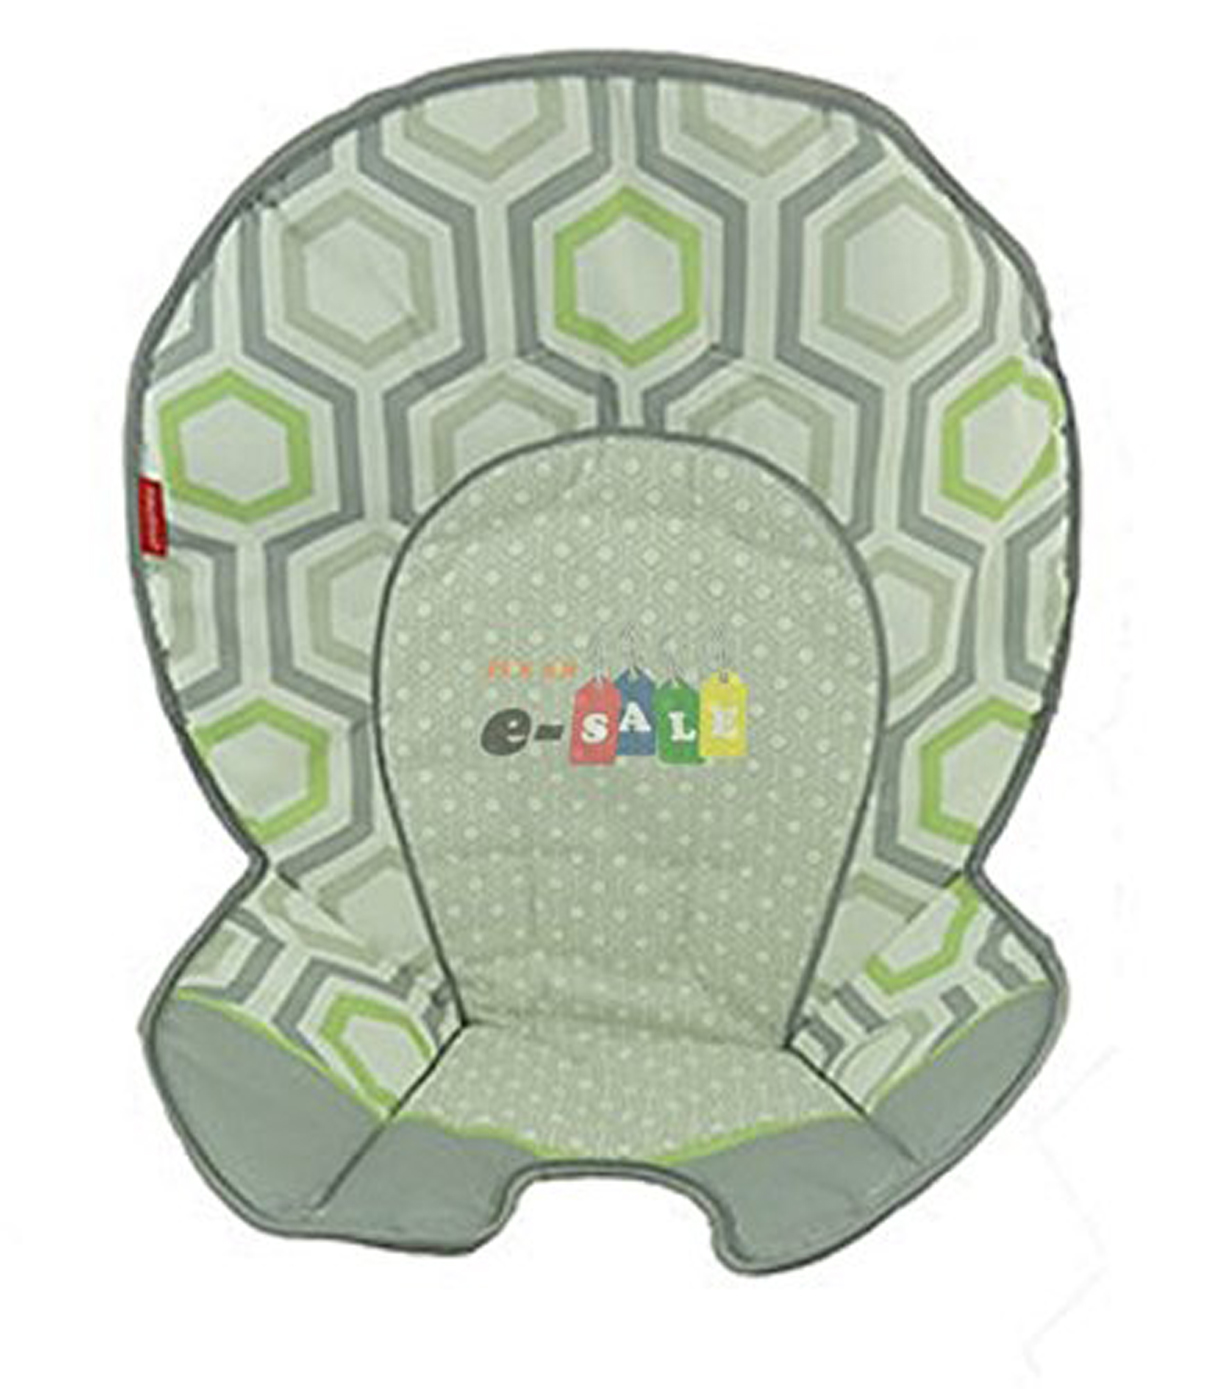 Fisher Price SpaceSaver High Chair Geo Meadow Replacement Pad DKR70 by Fisher-Price